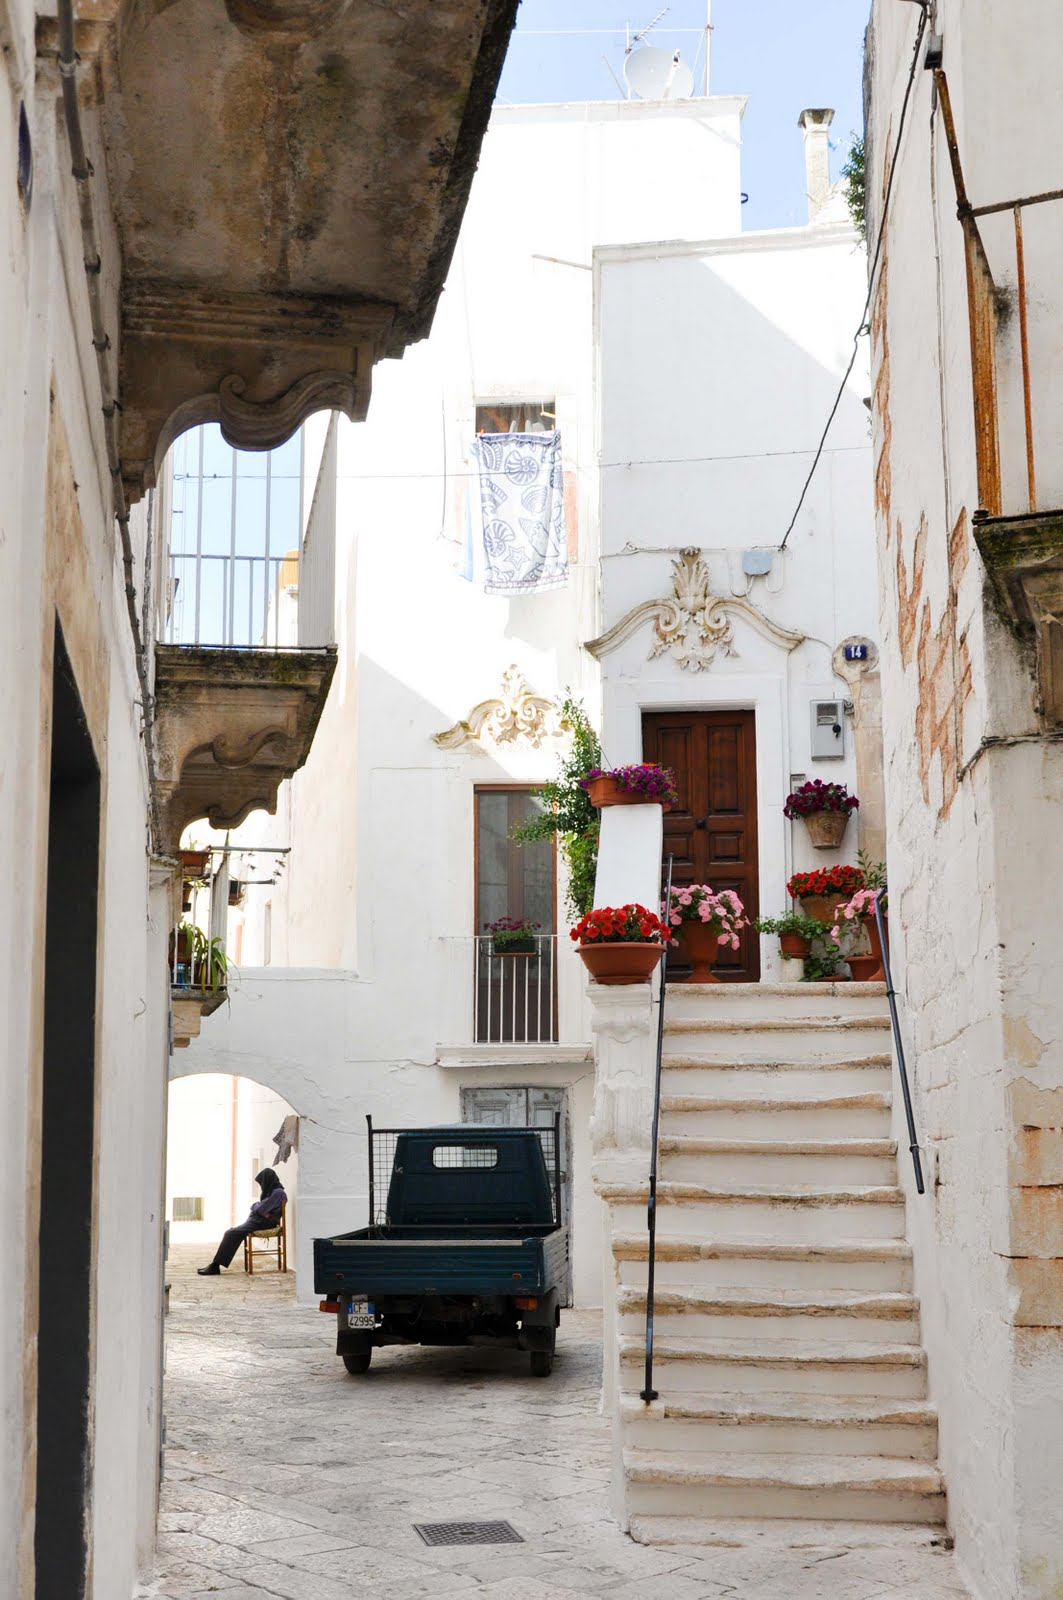 Read about Martina Franca here